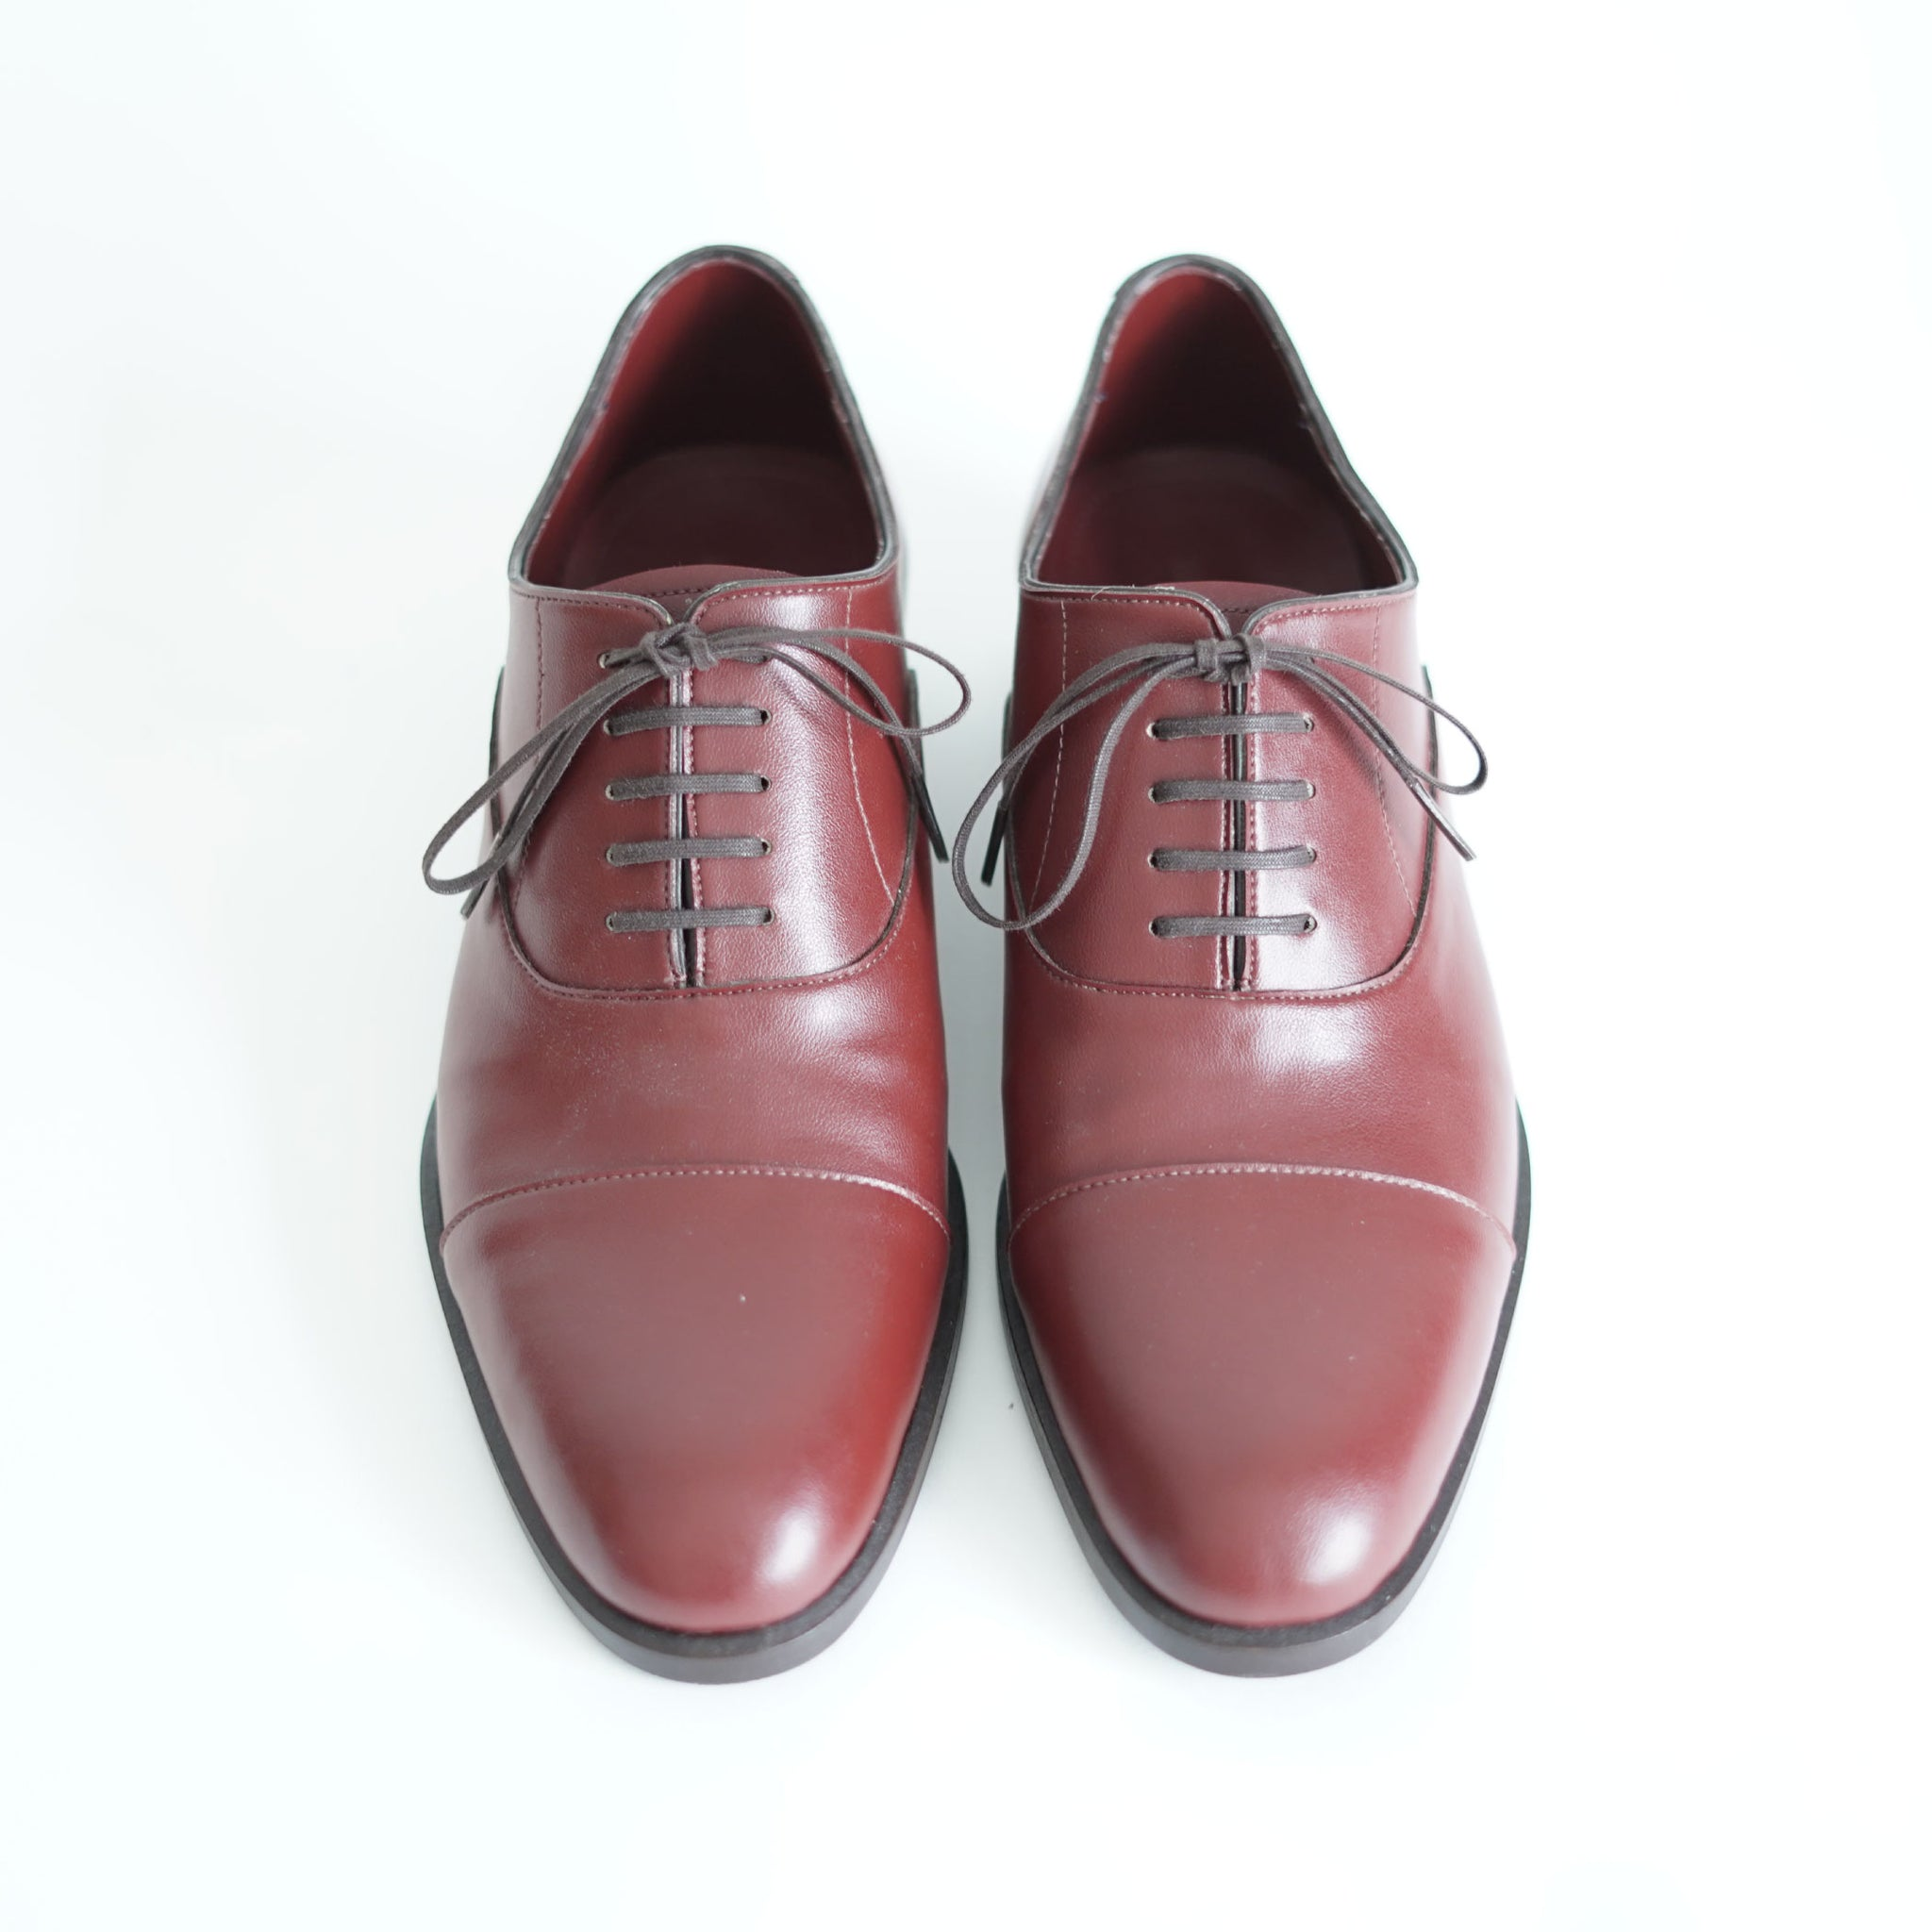 ML Penny Loafer - Dark Brown(C)